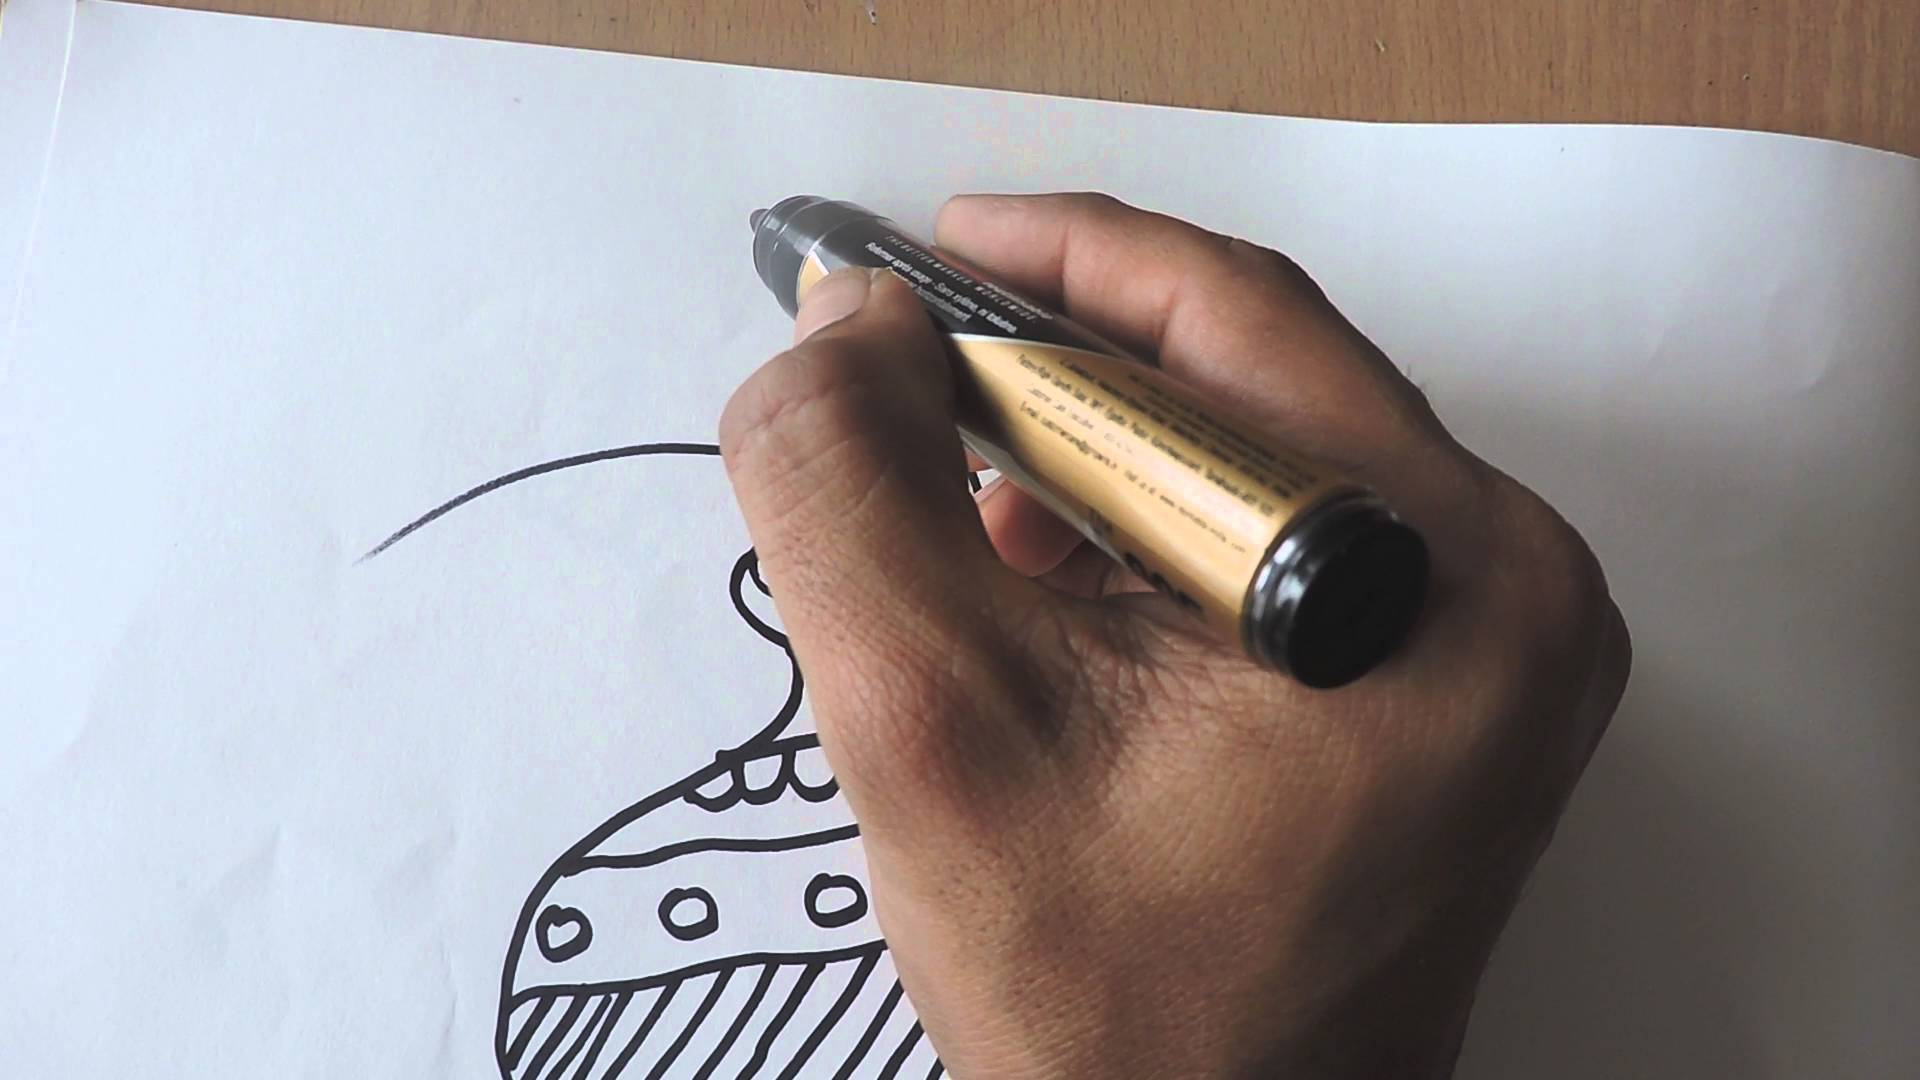 Drawn weed small PRAVEEN POT YouTube WITH DESIGN